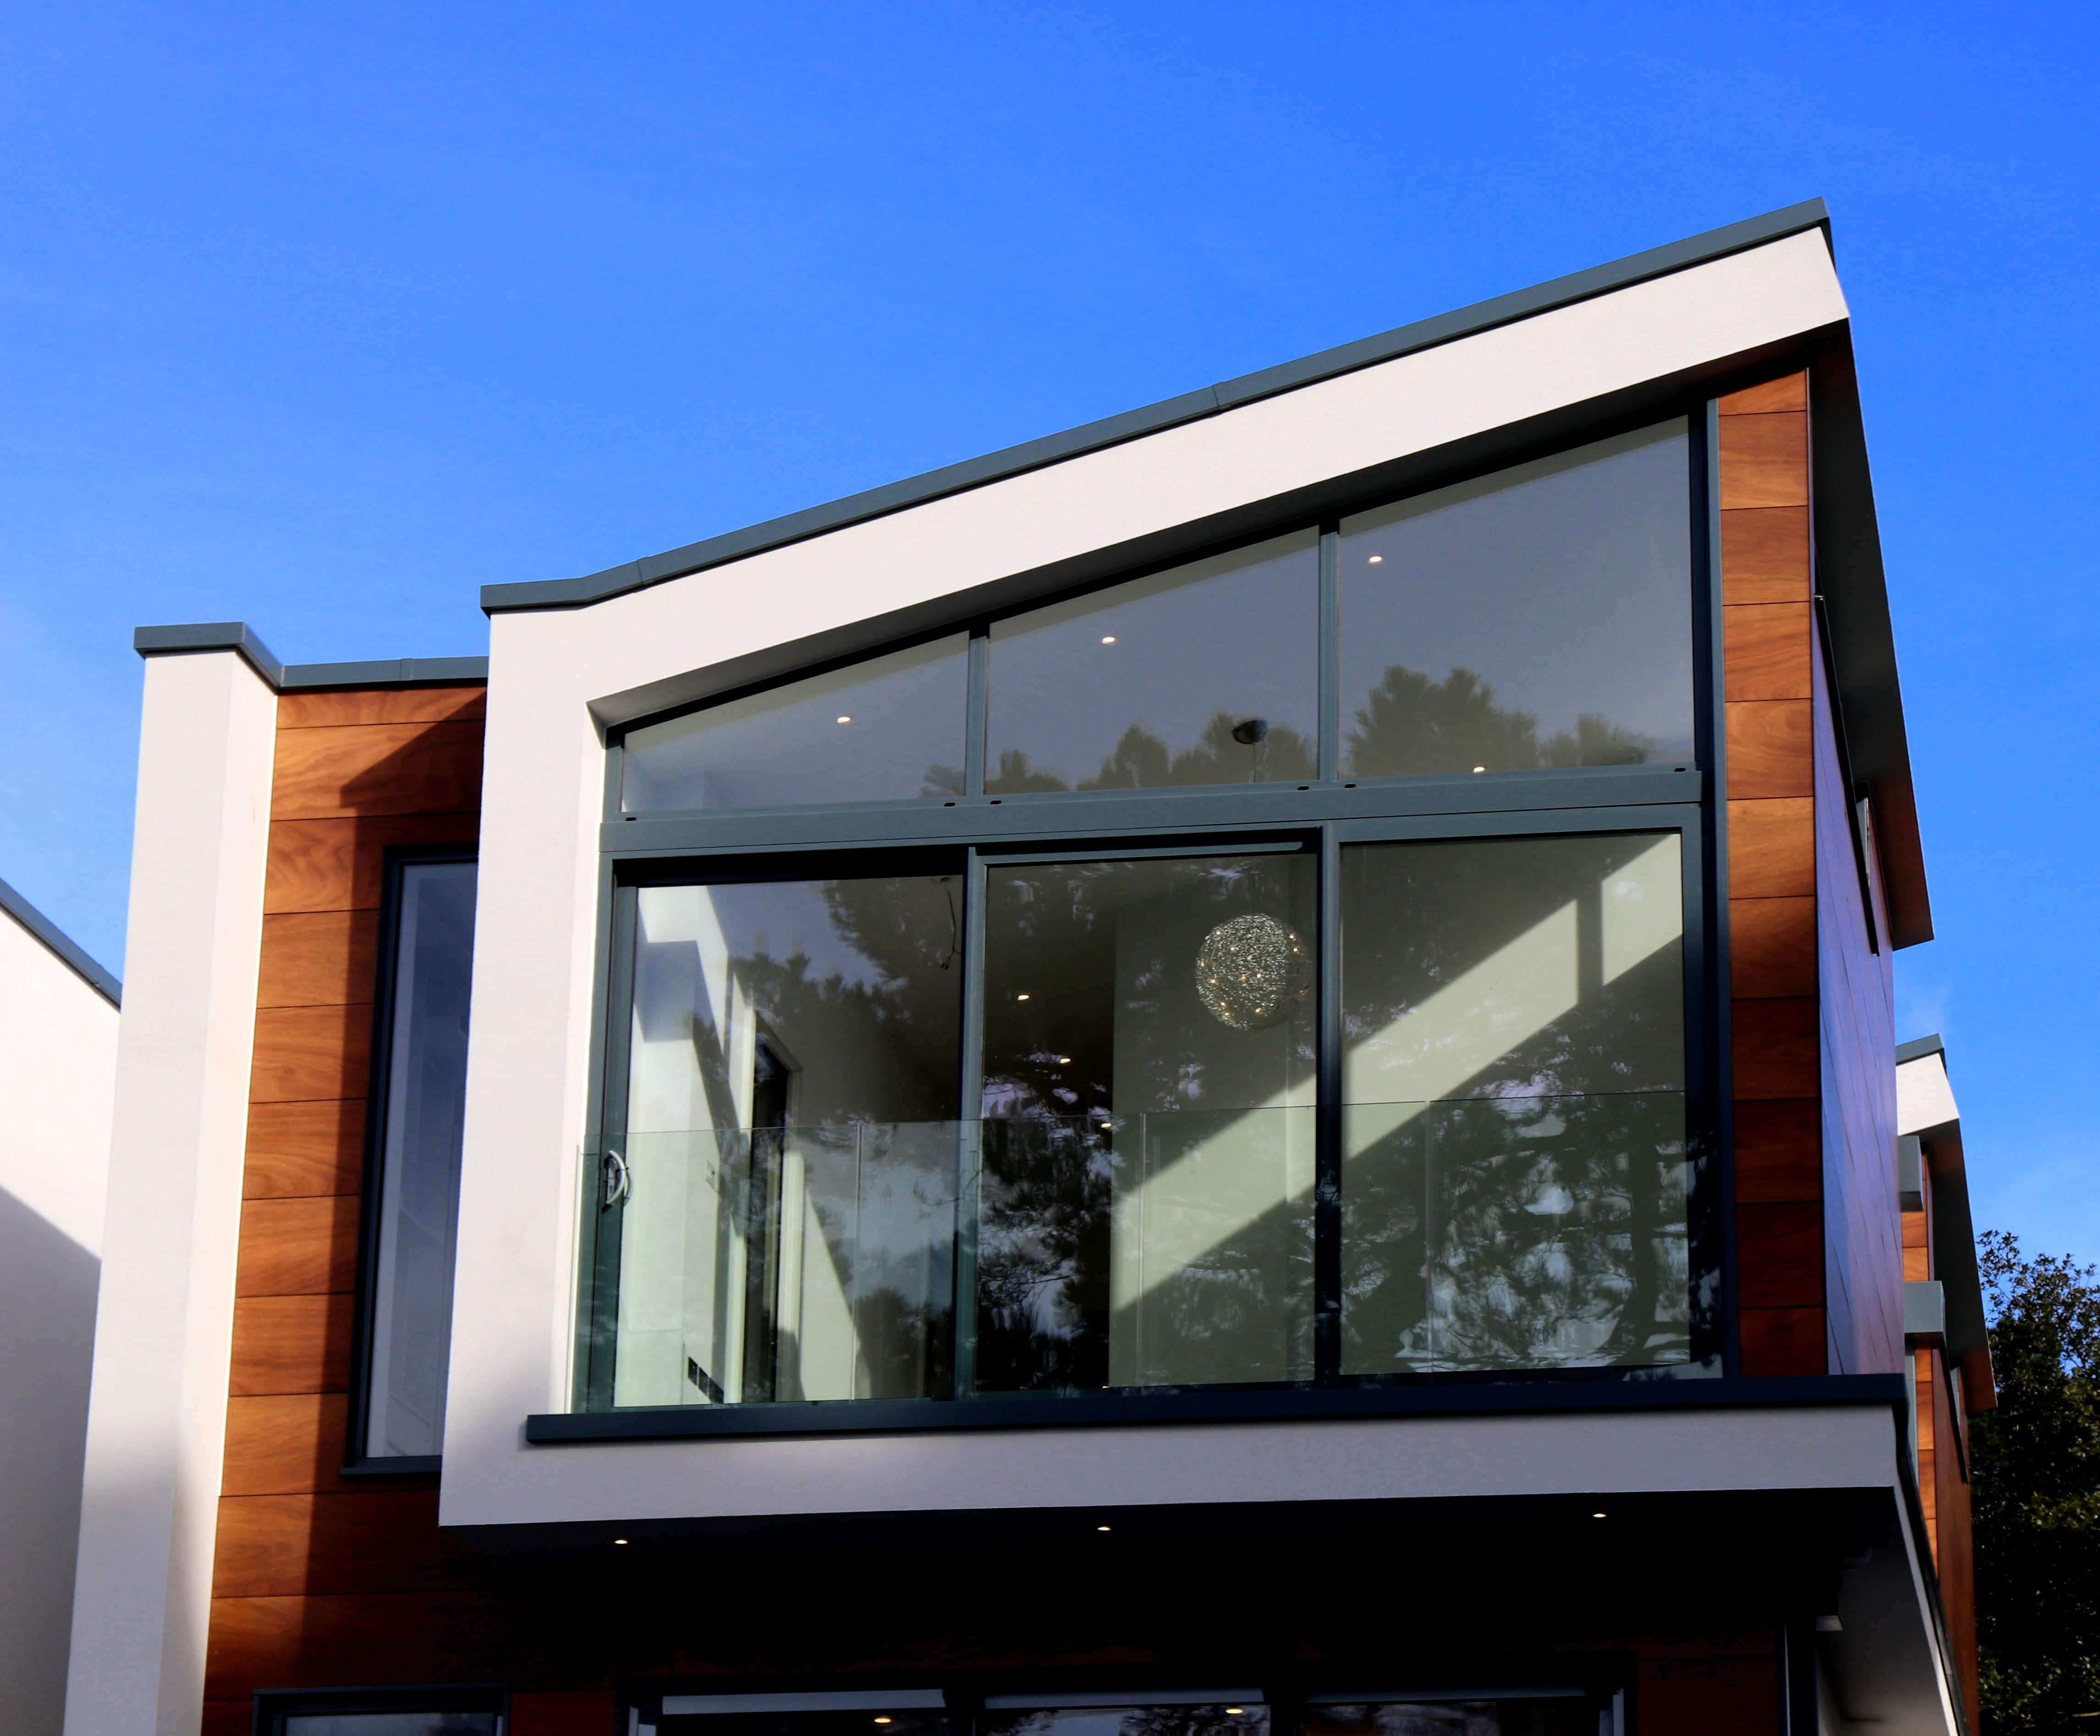 5 Reasons to Have Window Tinting for Your Residential Property